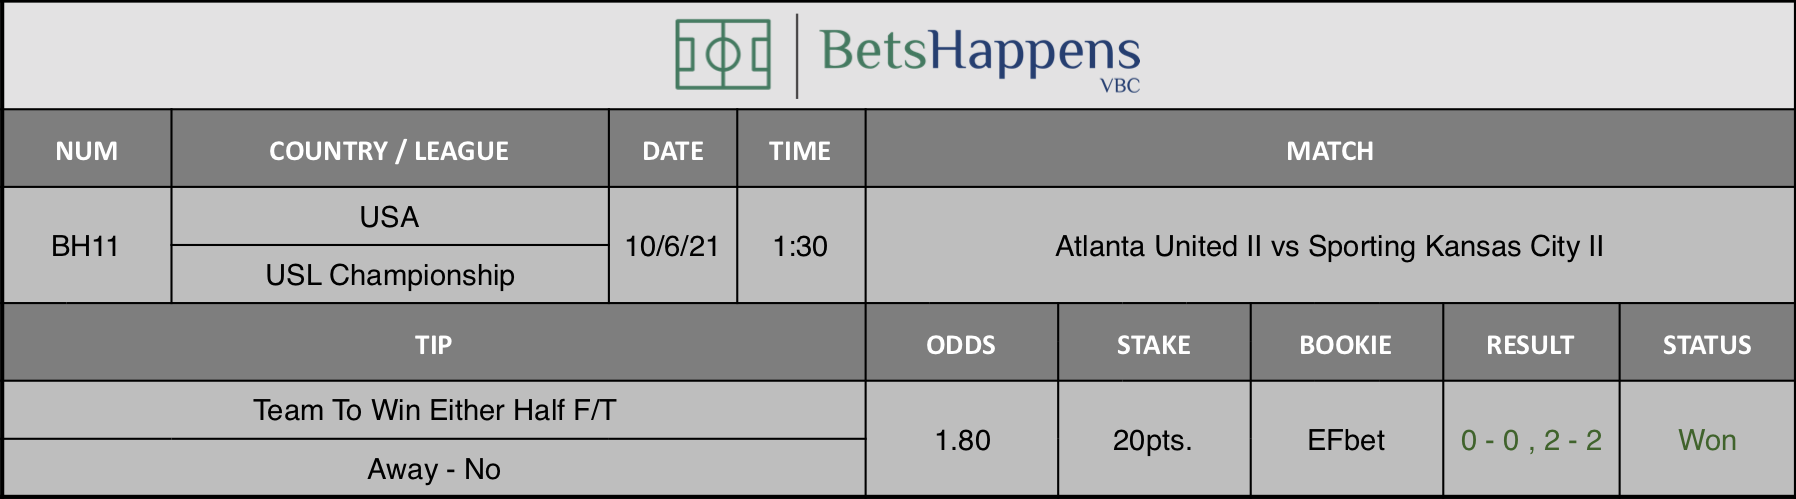 Results of our tip for the Atlanta United II vs Sporting Kansas City II Match Team To Win Either Half F/T Away - No is recommended.